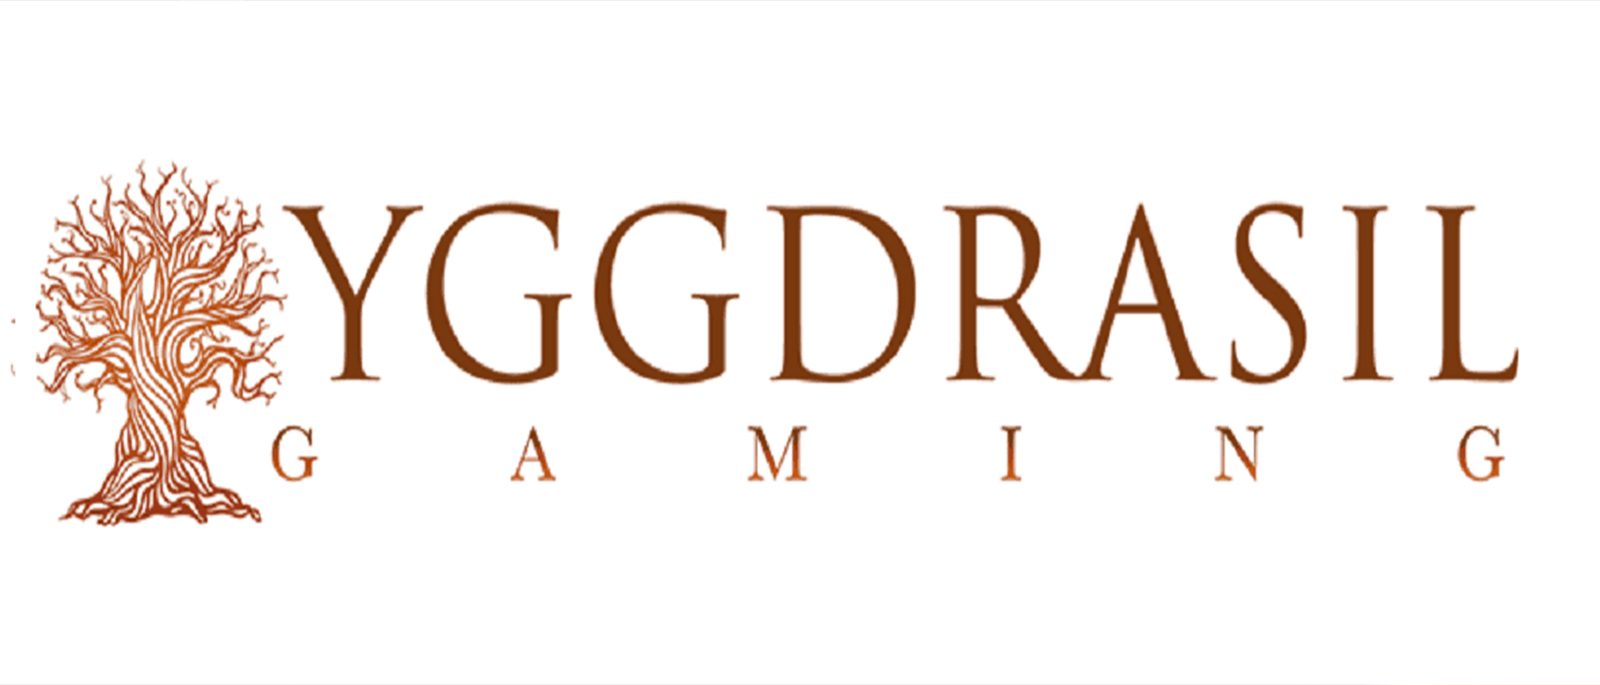 Yggdrasil Gaming ist nun auch in Italien live